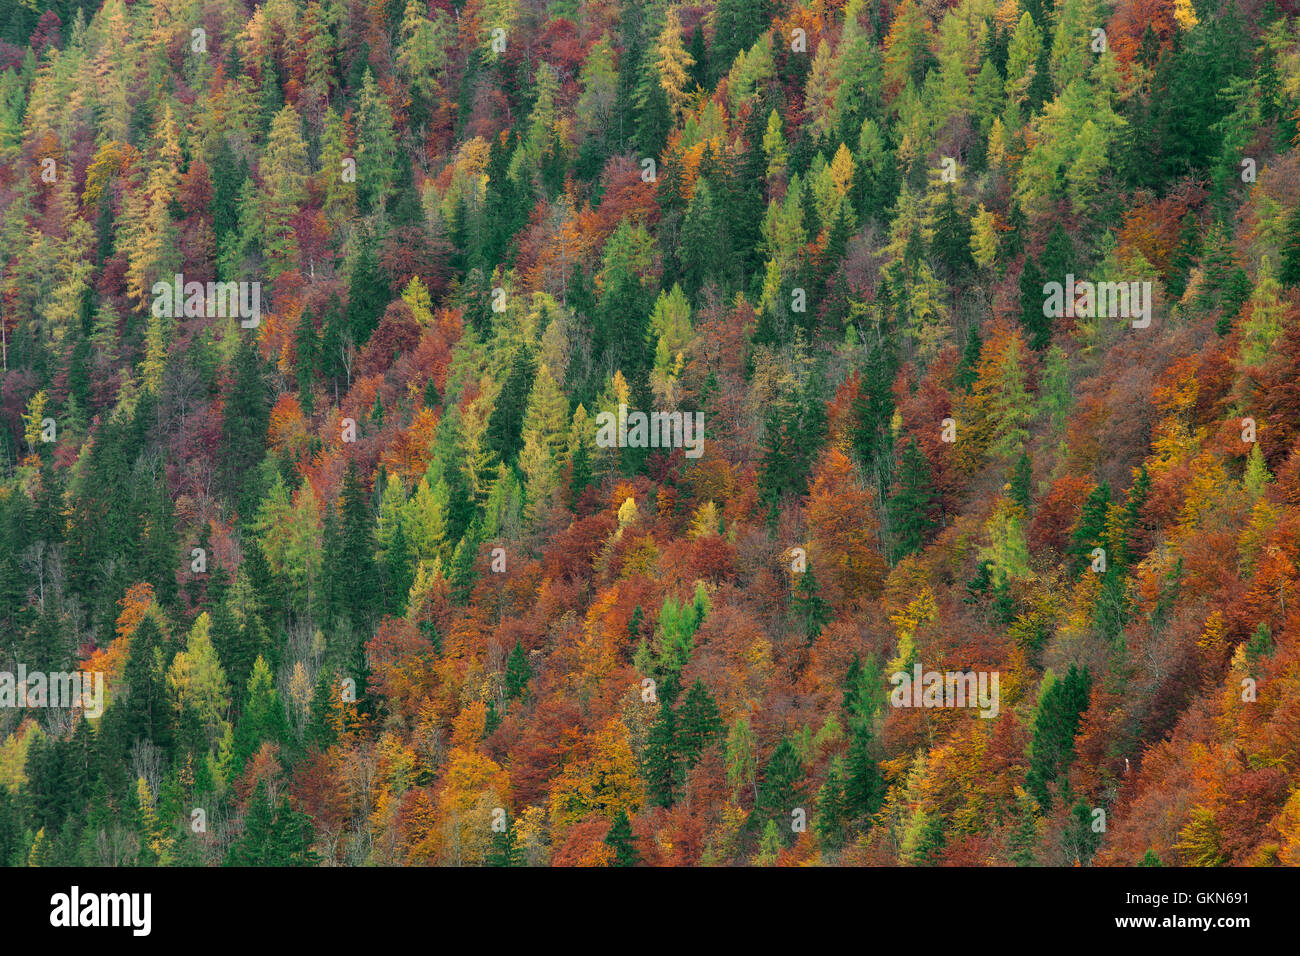 Mixed forest showing foliage of deciduous trees in colourful autumn ...